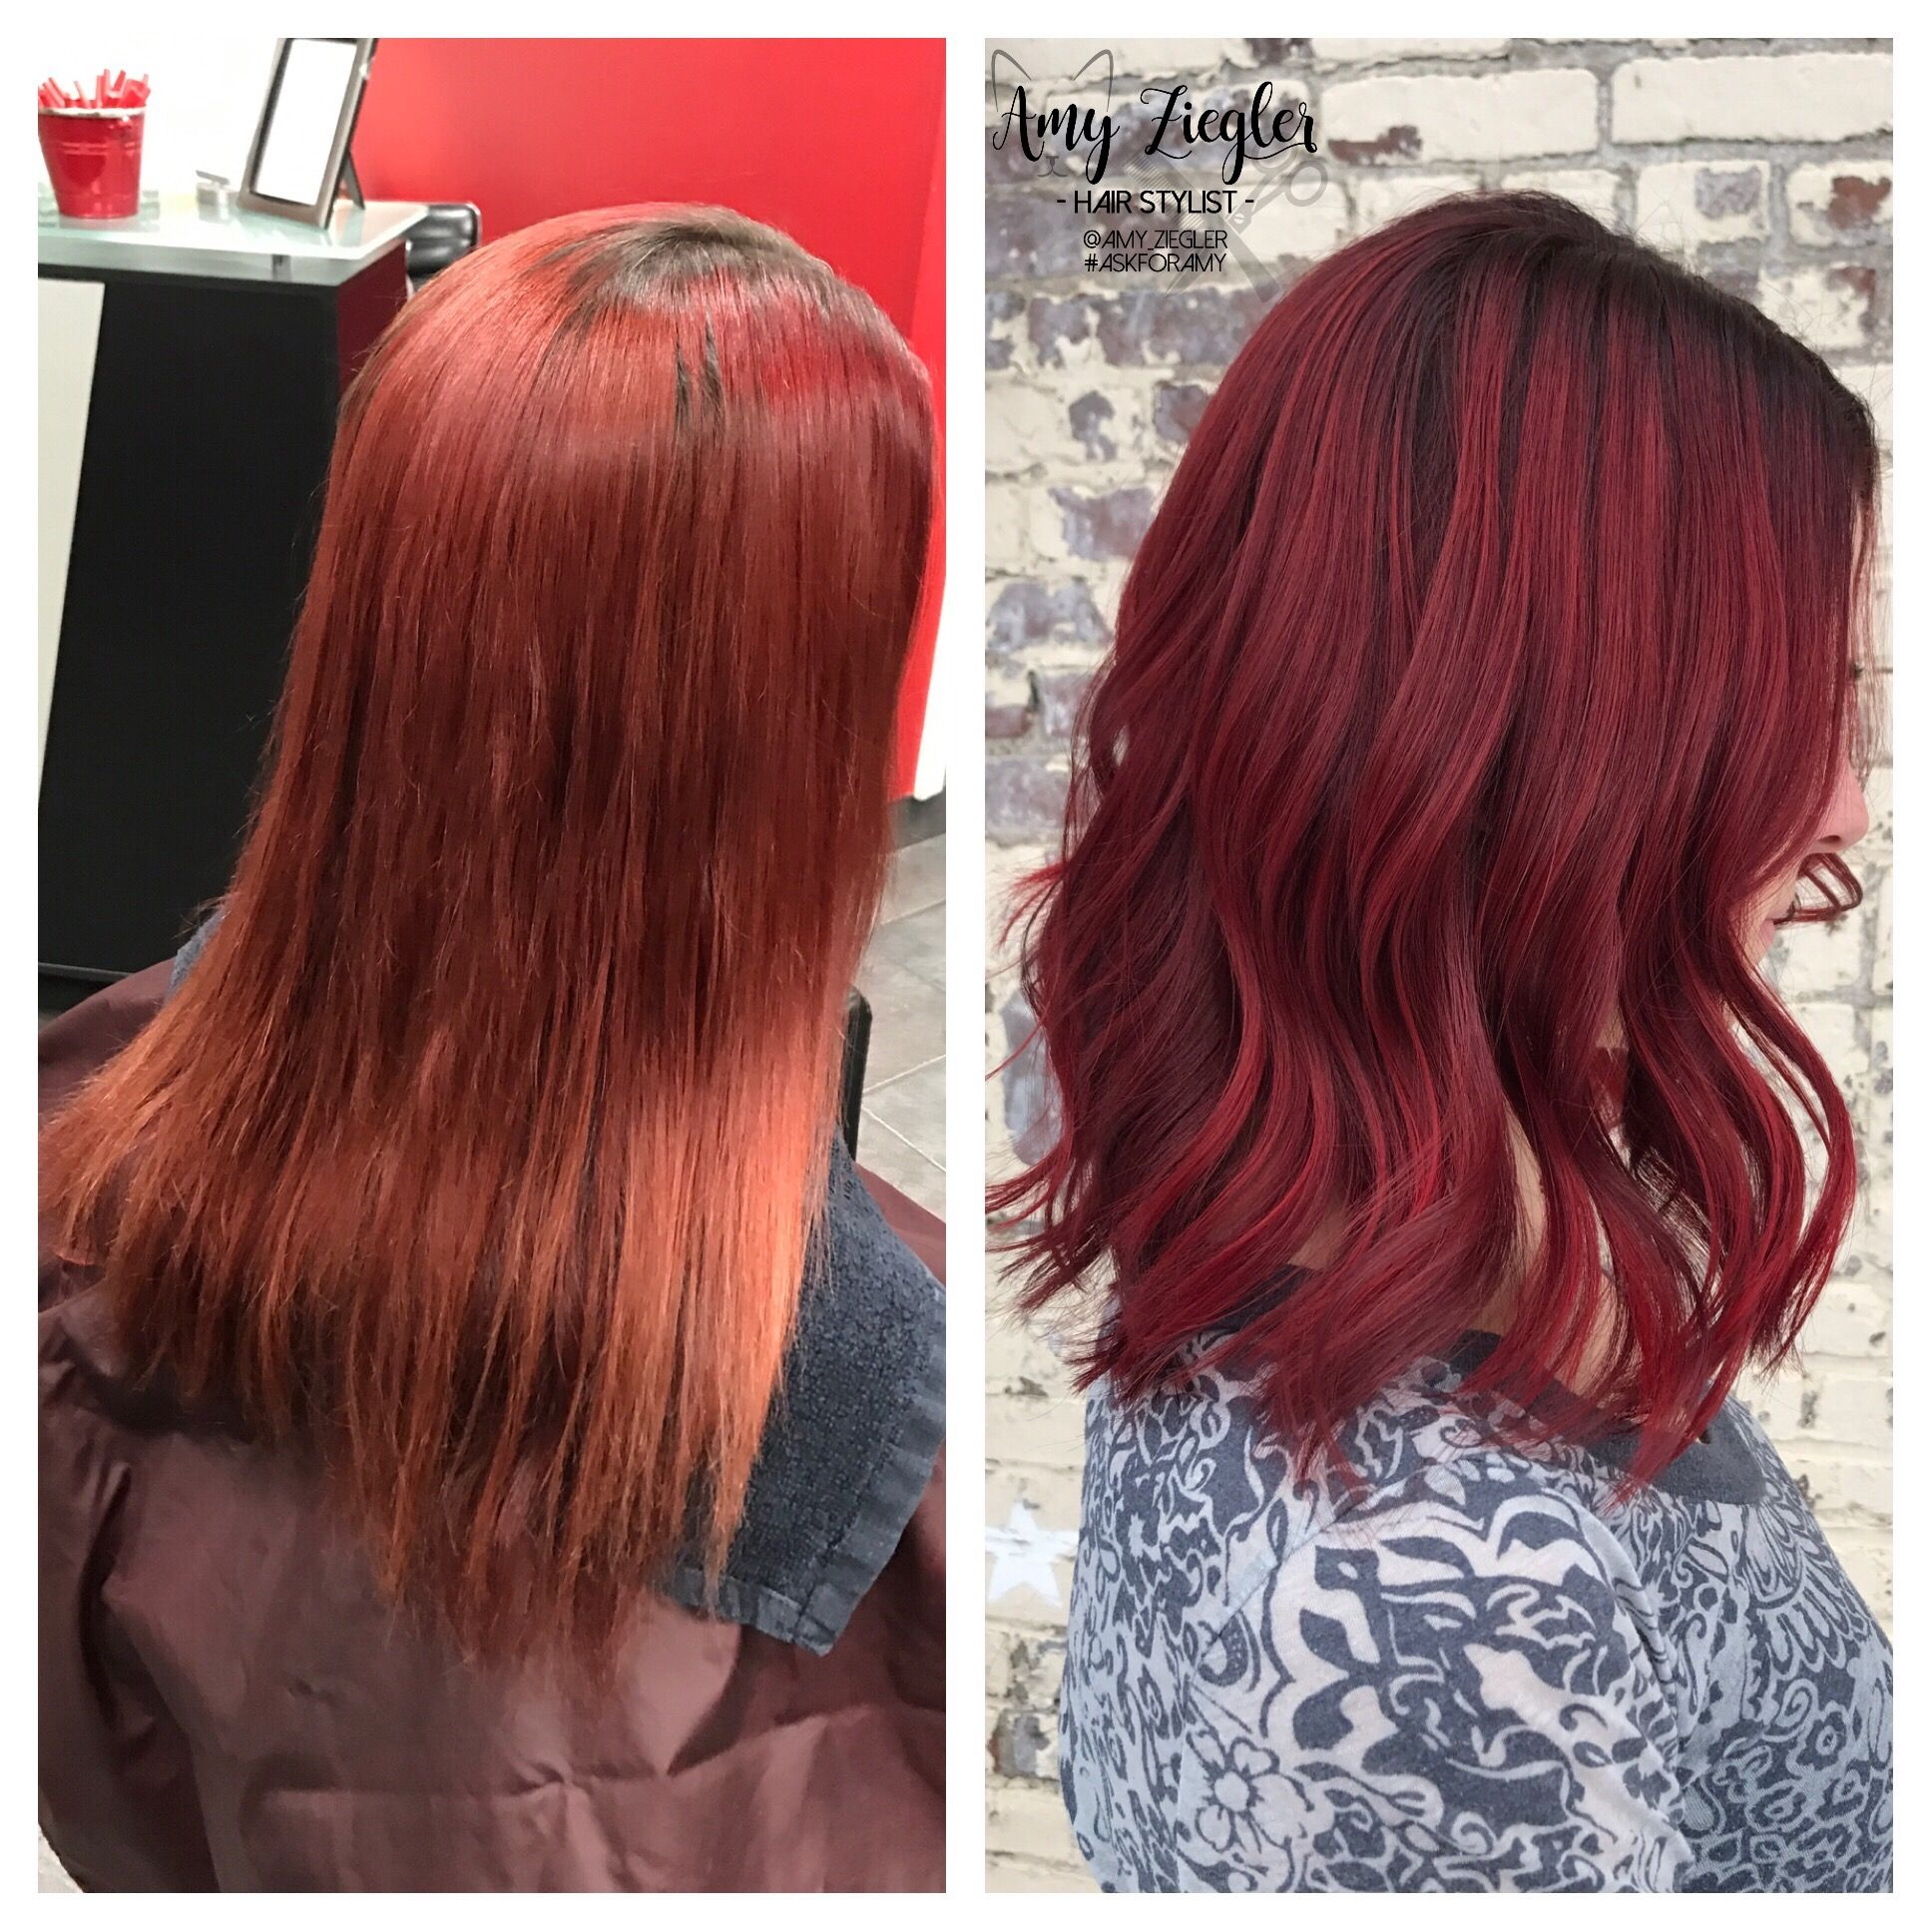 Before After Transformation Joico Red Hair With Redken Shades Cream Root Smudge By Amy Ziegler Hair Red Hair Posh Hair